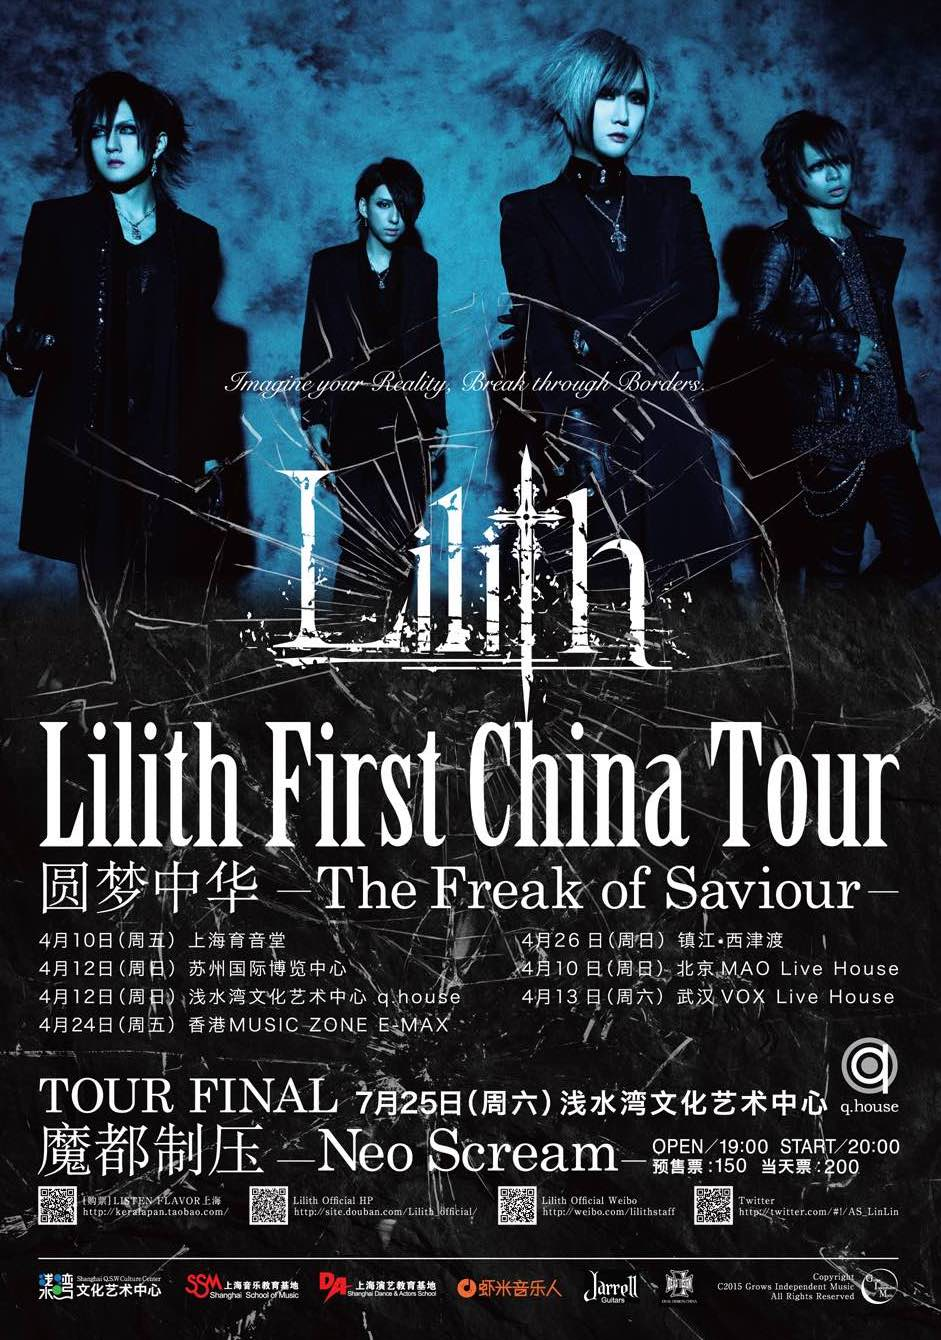 Lilith First China Tour